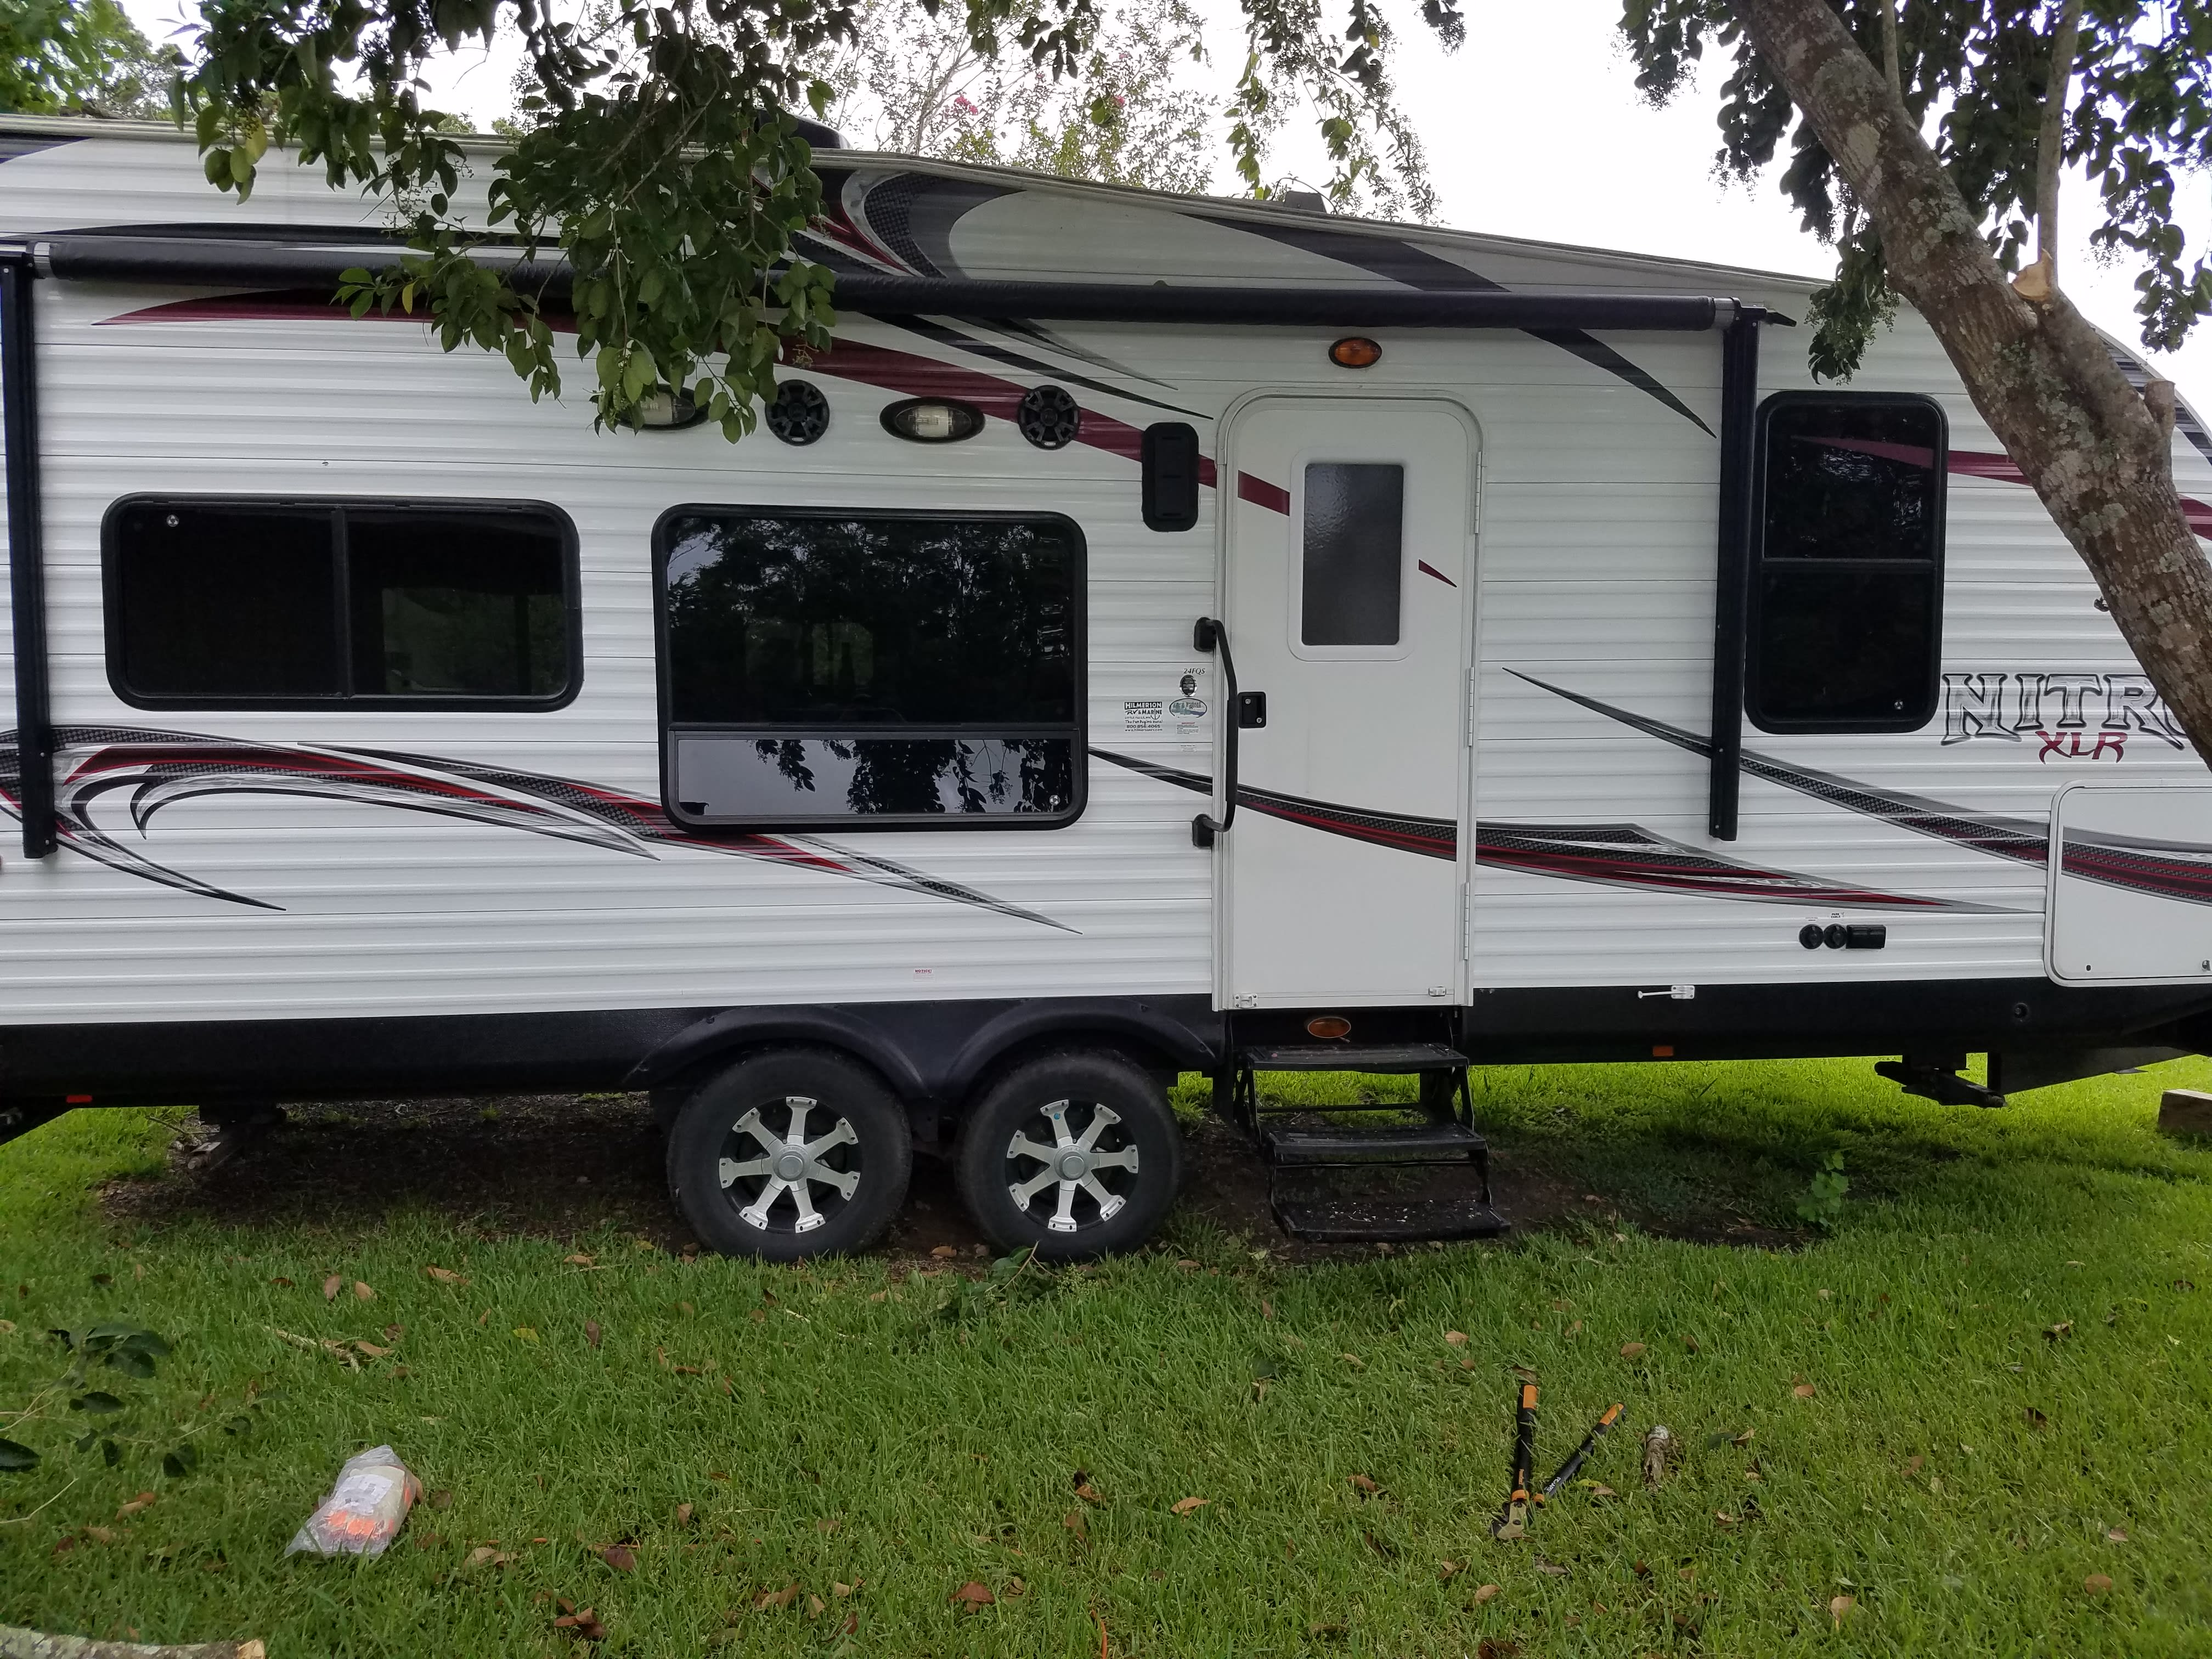 exterior speakers and an automated awning make for a great outside setting. plus outside plugs to hook up a fan to beat the heat!. forest river nitro xlr 2013